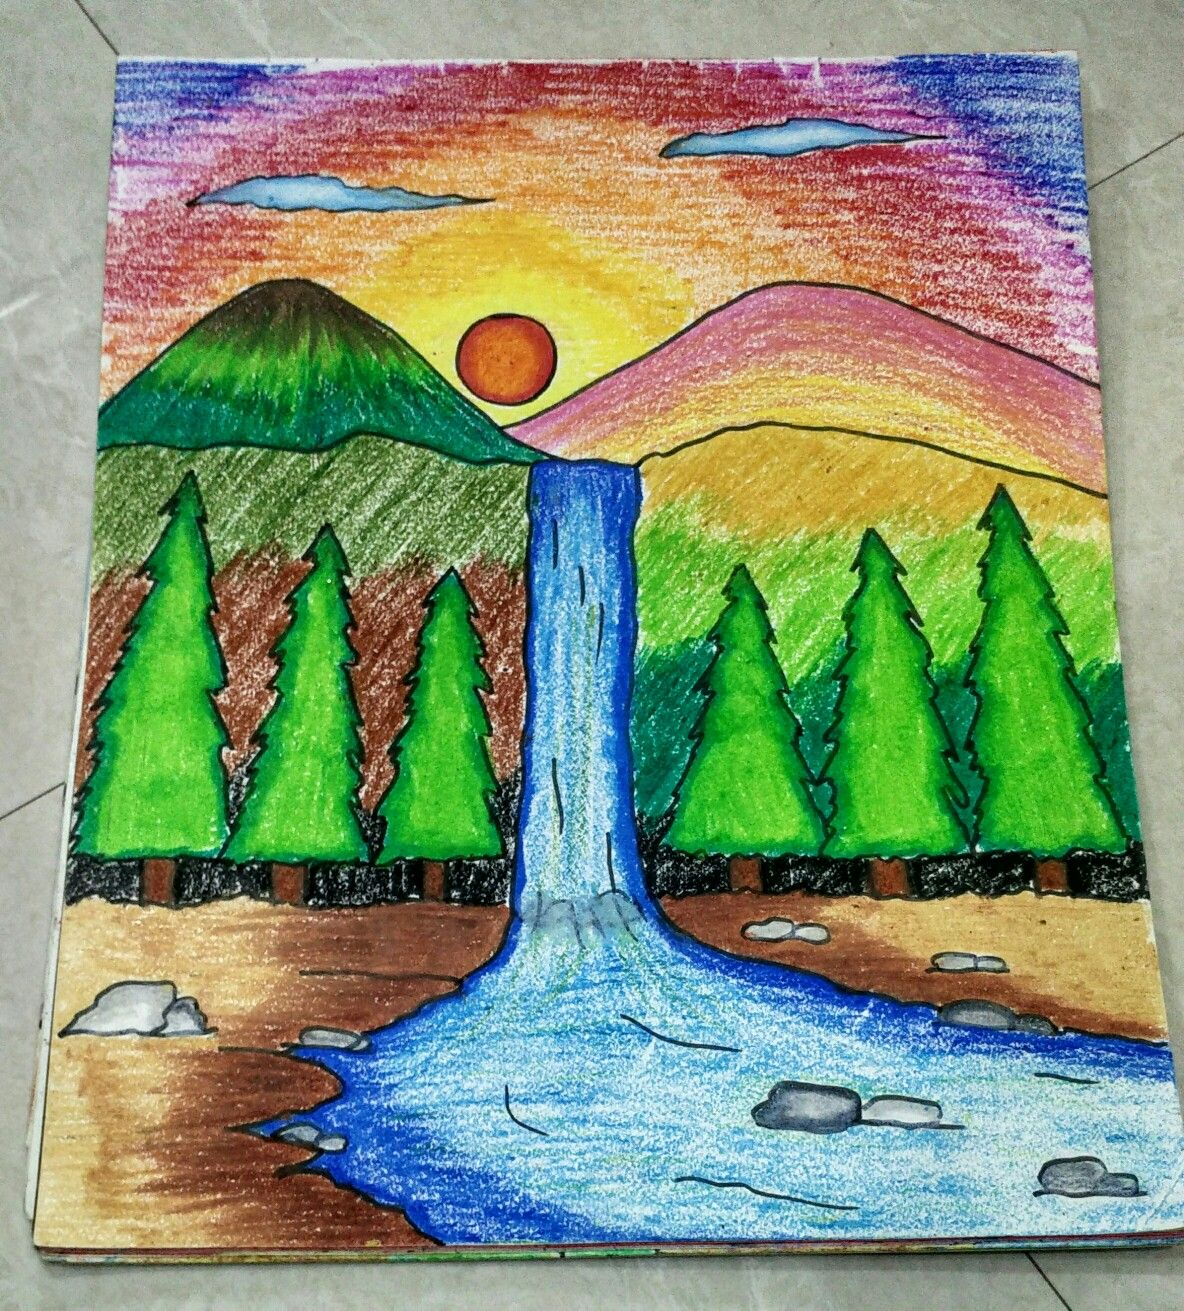 Pin By Mnp Dance On Drawing Class In 2020 Nature Art Painting Oil Pastel Drawings Oil Pastel Drawings Easy